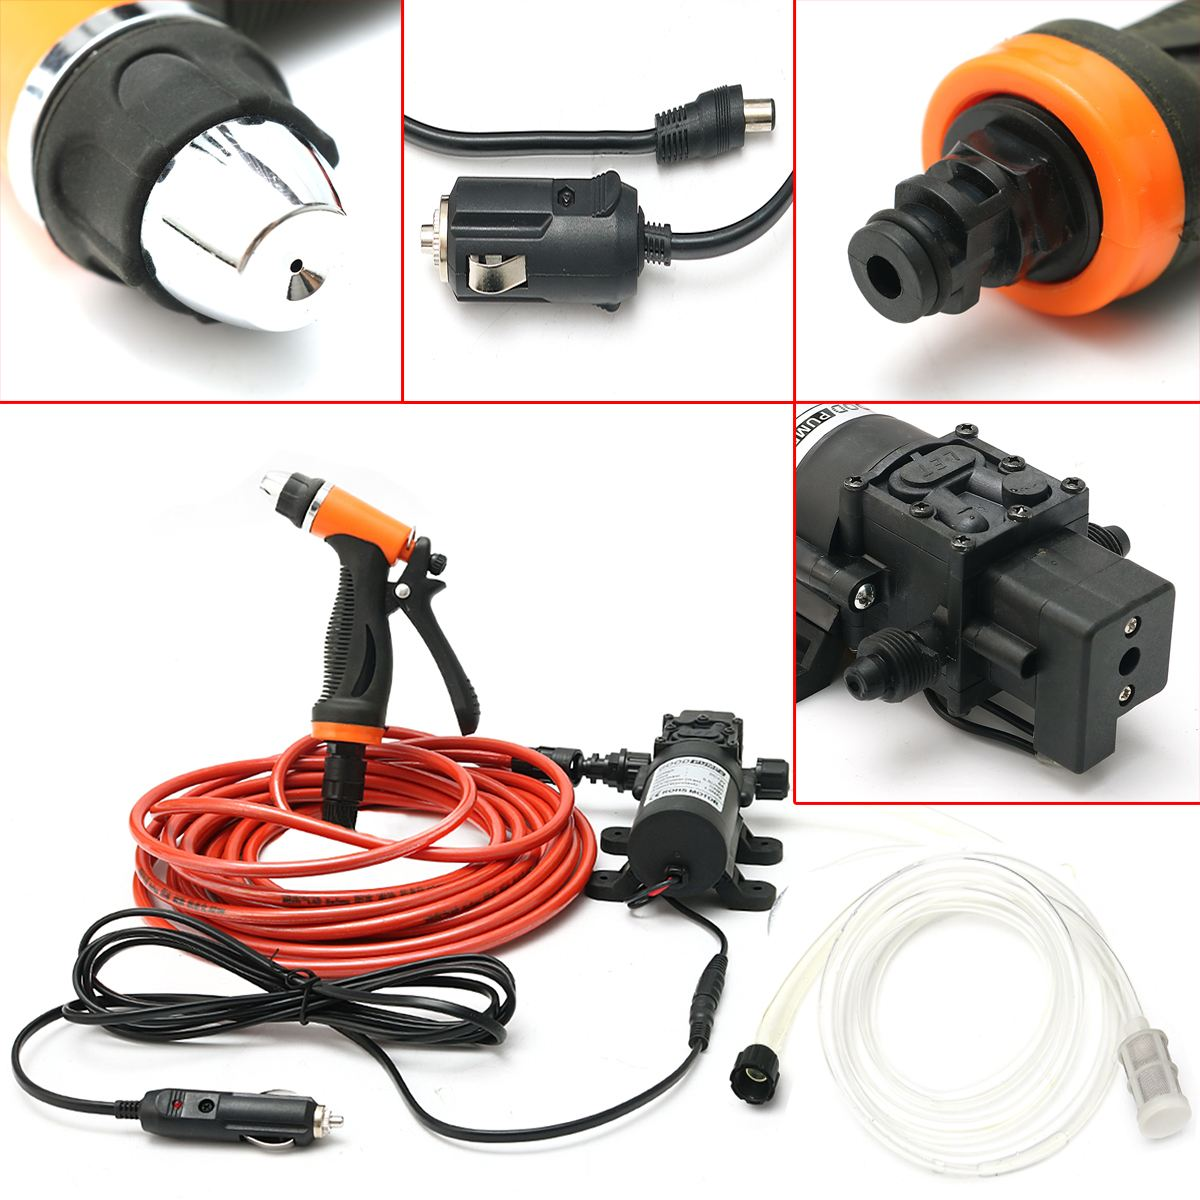 Portable High Pressure 12V 100W 160PSI Car Electric Washer Washing Machine Cigarette Lighter Water Pump Kit portable water pump cigarette lighter high pressure 12v spray gun car cleaner self suction electric car washer